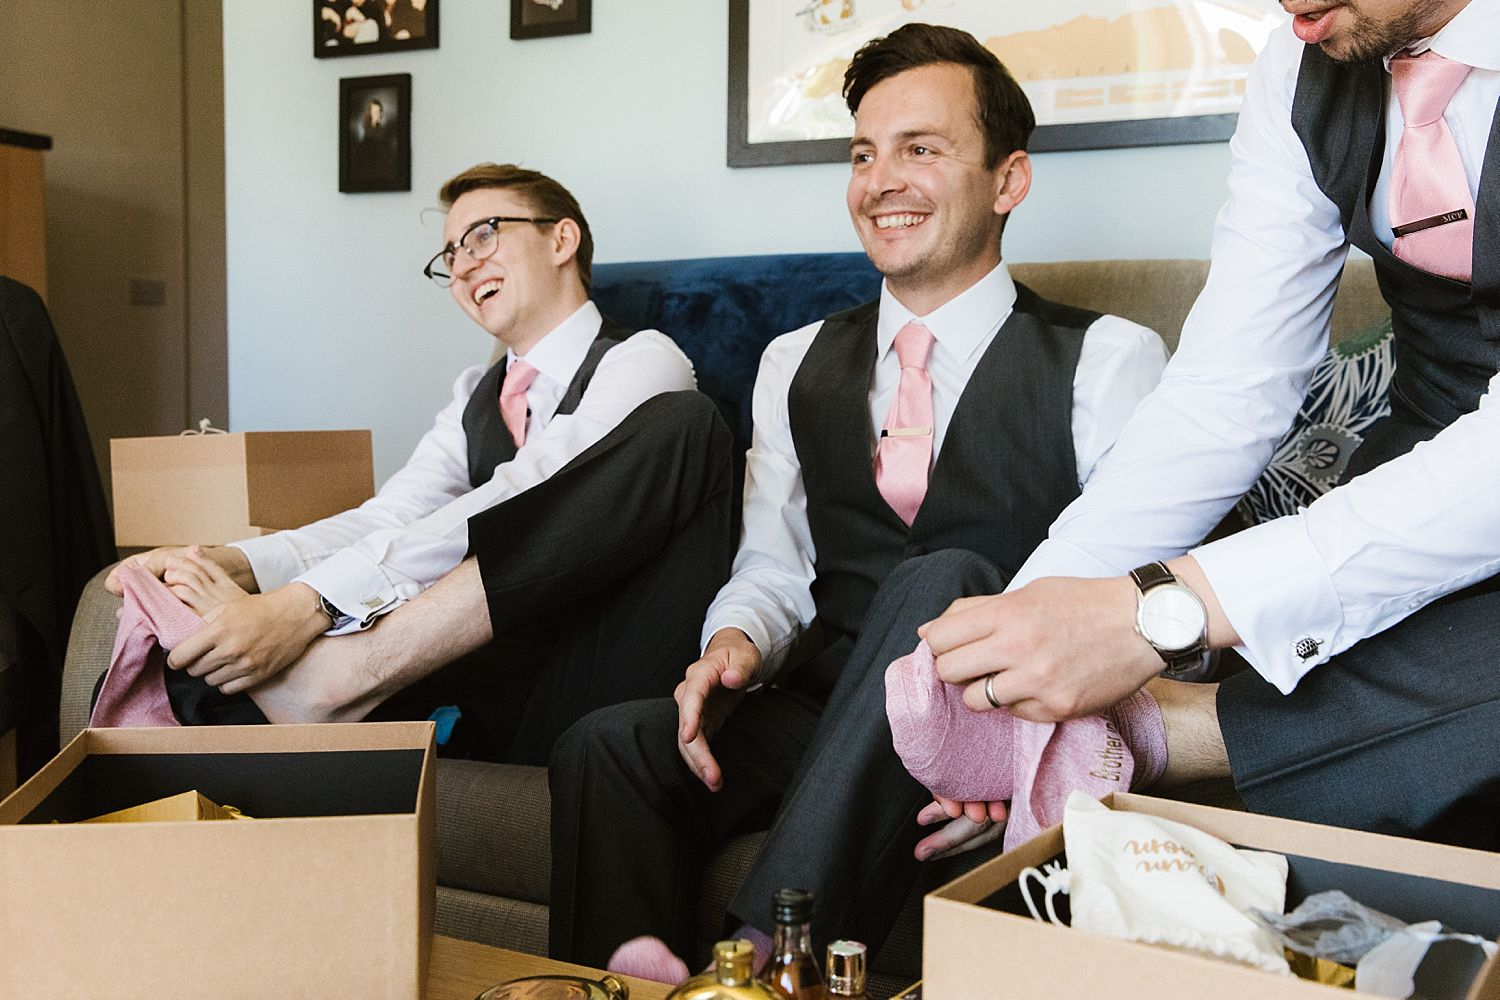 Groom and ushers putting their socks on at Sandhole Oak Barn wedding, suits from The Groom's Room, Essex.